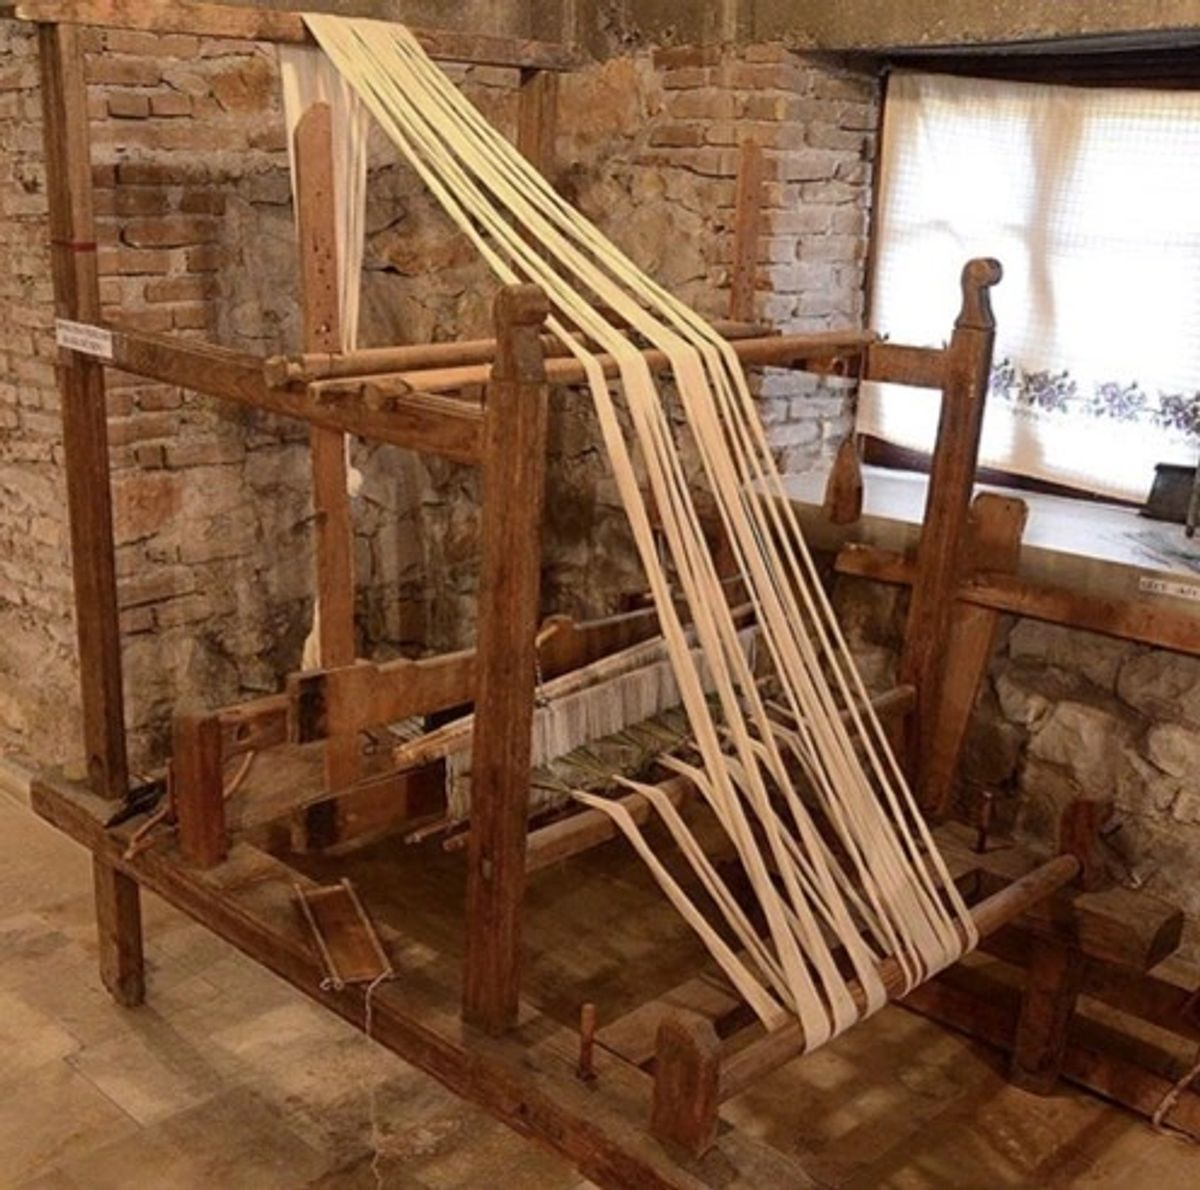 weaving table